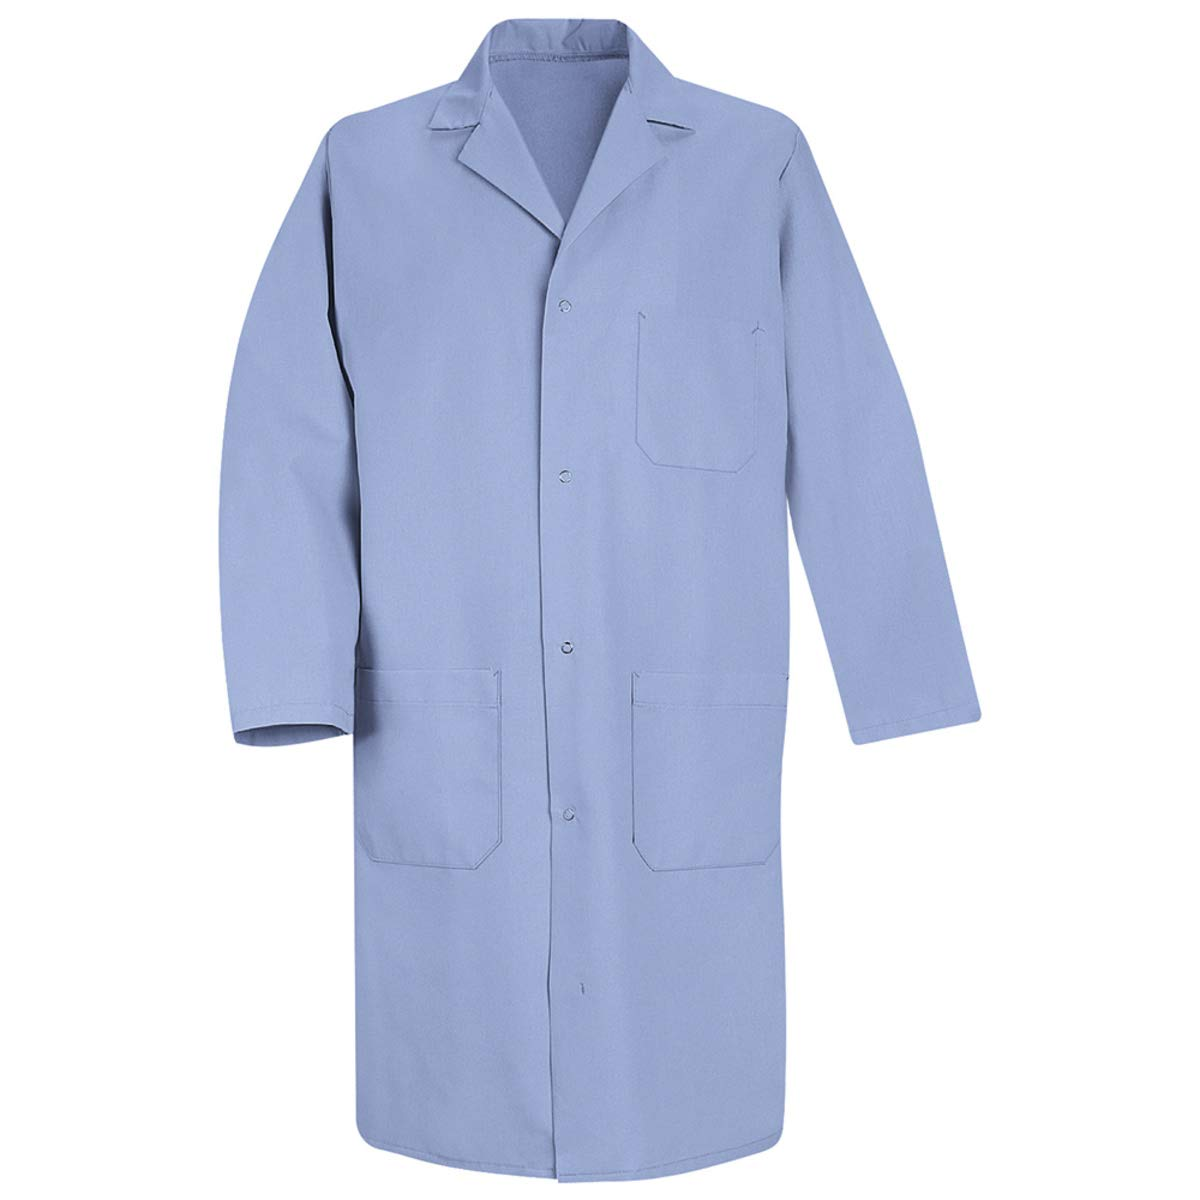 Red Kap Medium/Regular Light Blue 5 Ounce Polyester/Cotton Lab Coat With Gripper Closure